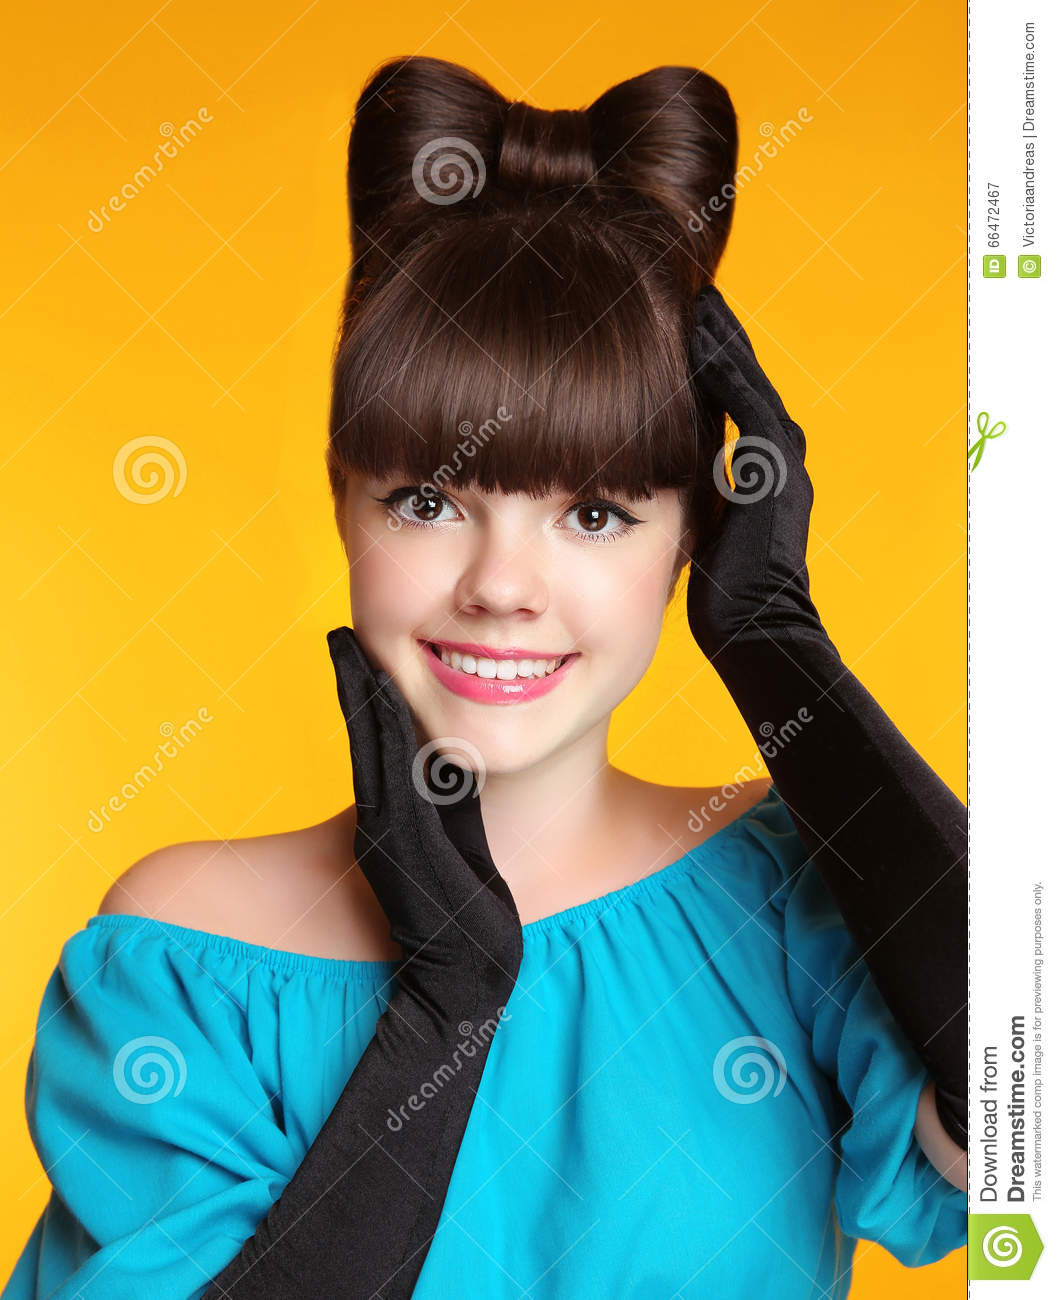 Happy Smiling Teen Girl With Bow Hairstyle, Beauty Young